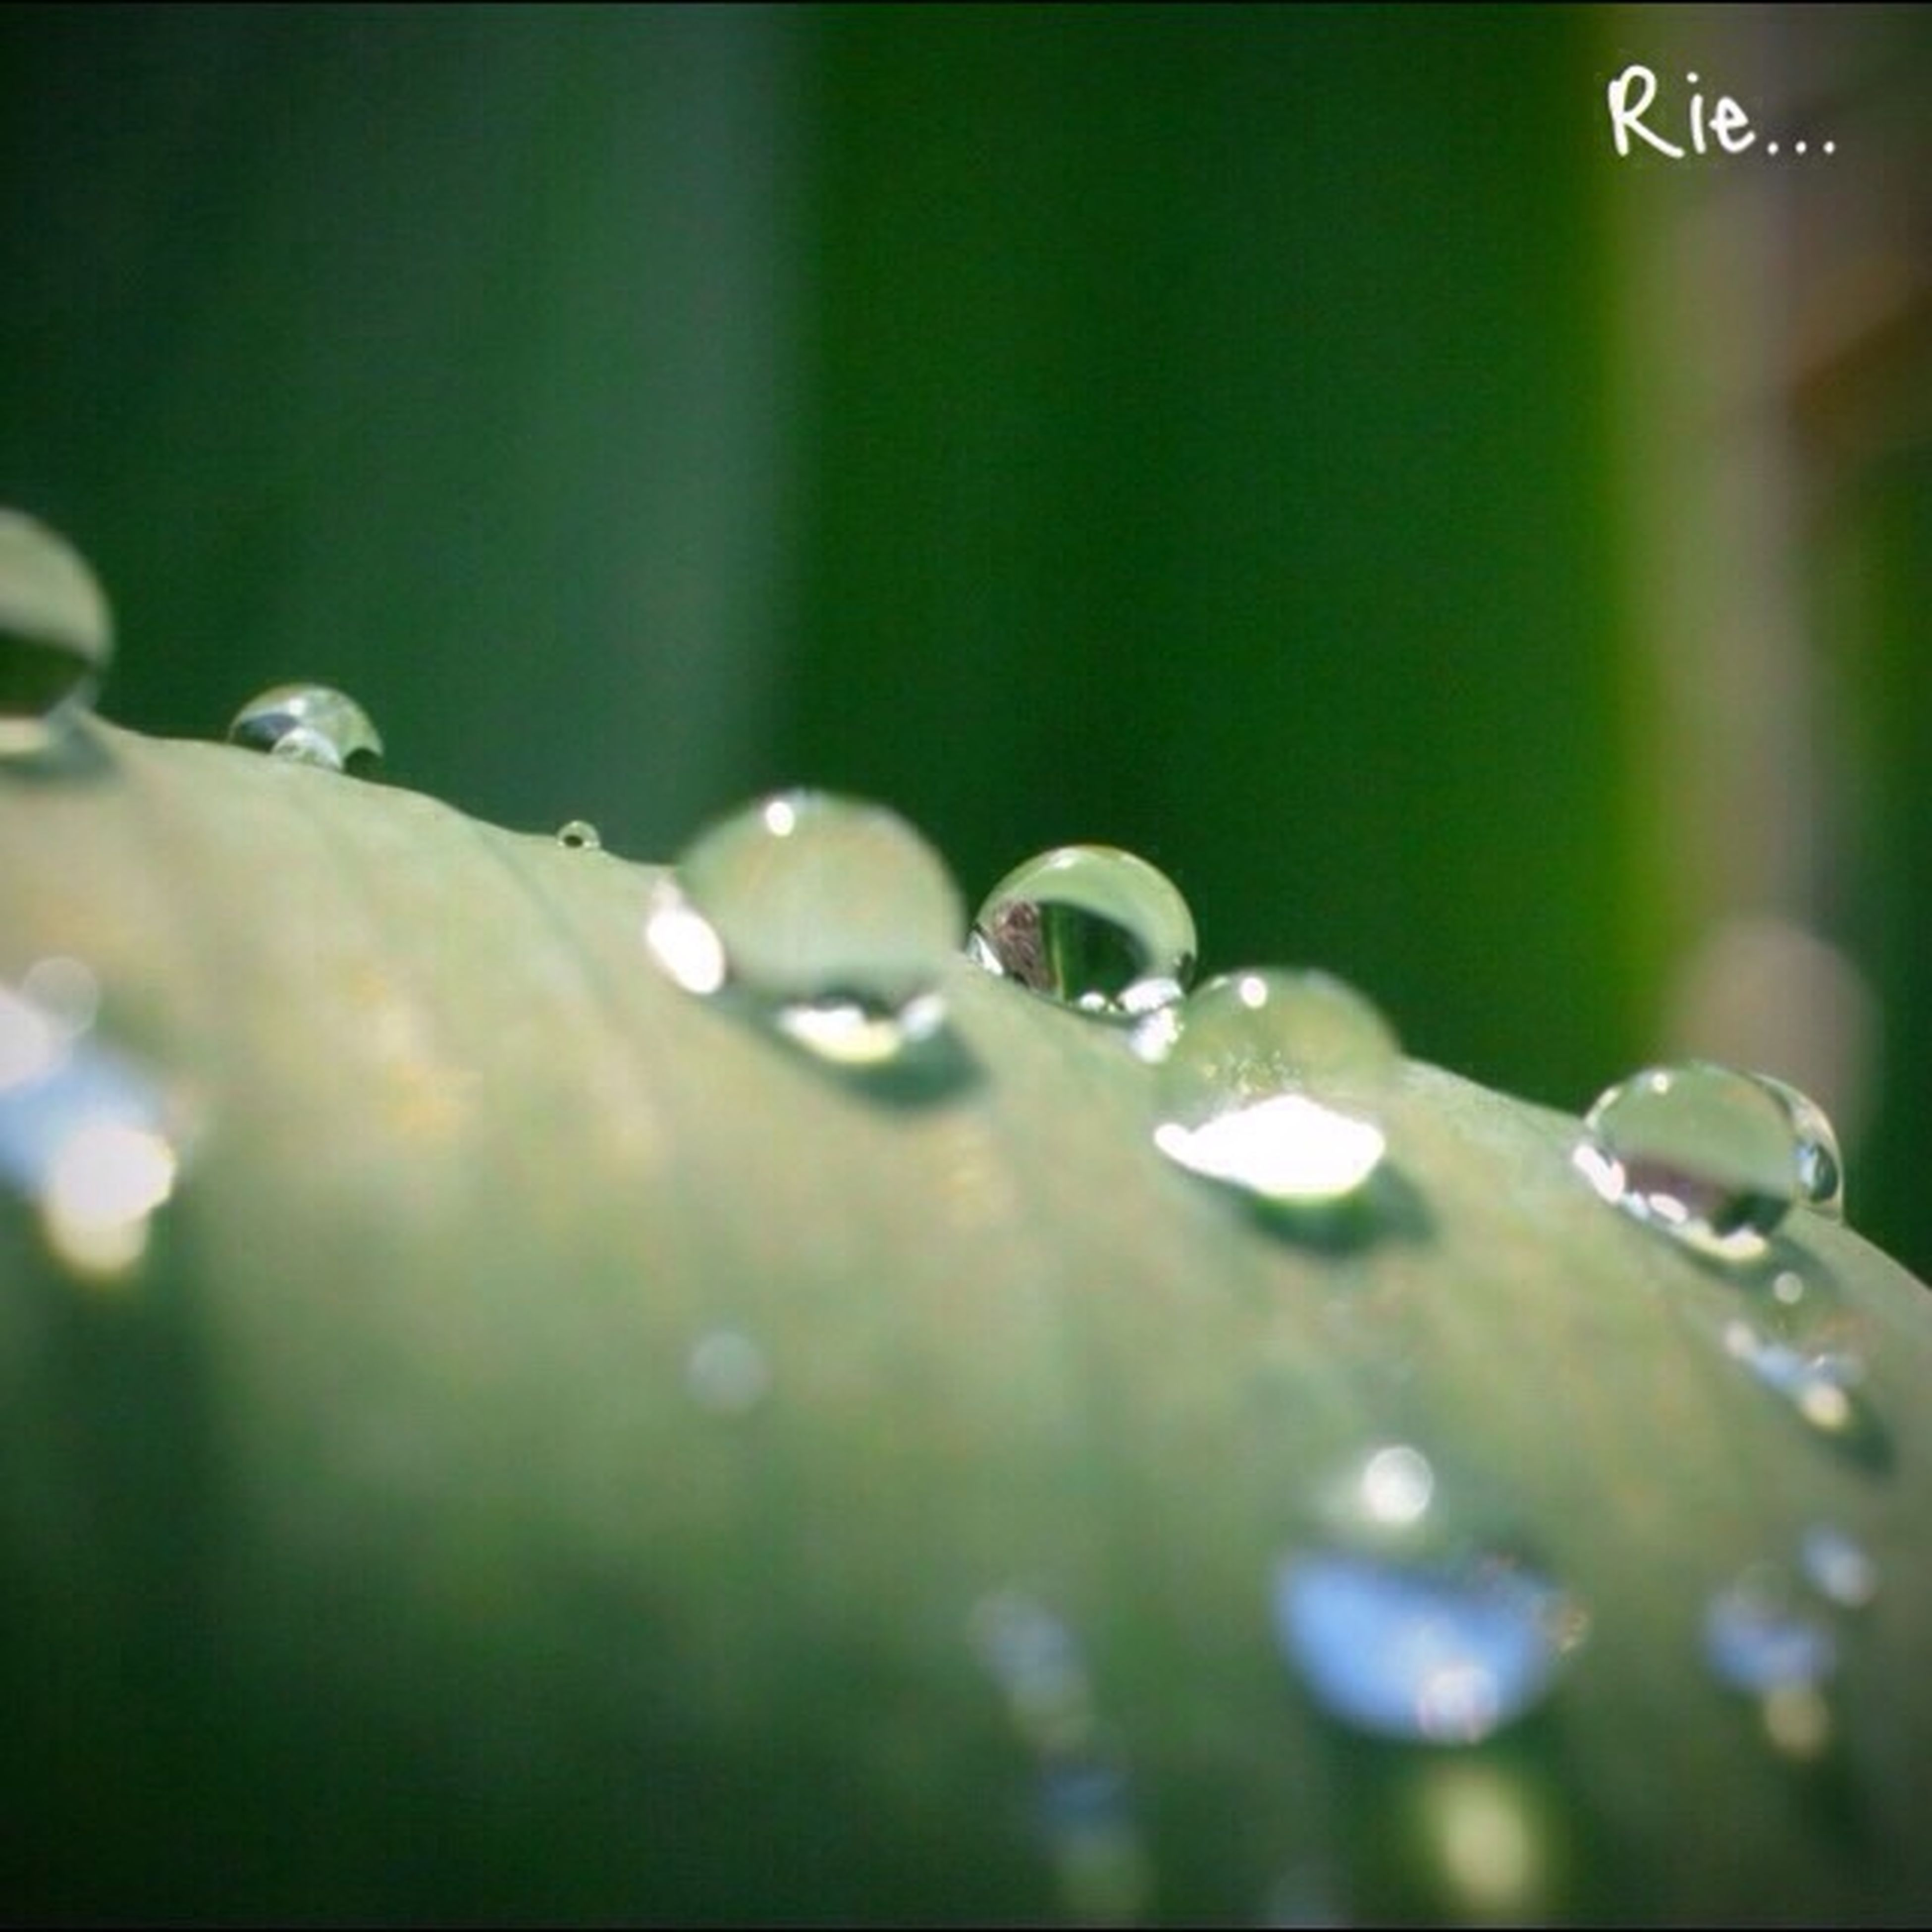 drop, close-up, water, wet, focus on foreground, selective focus, dew, freshness, fragility, growth, beauty in nature, nature, plant, water drop, purity, raindrop, green color, droplet, detail, day